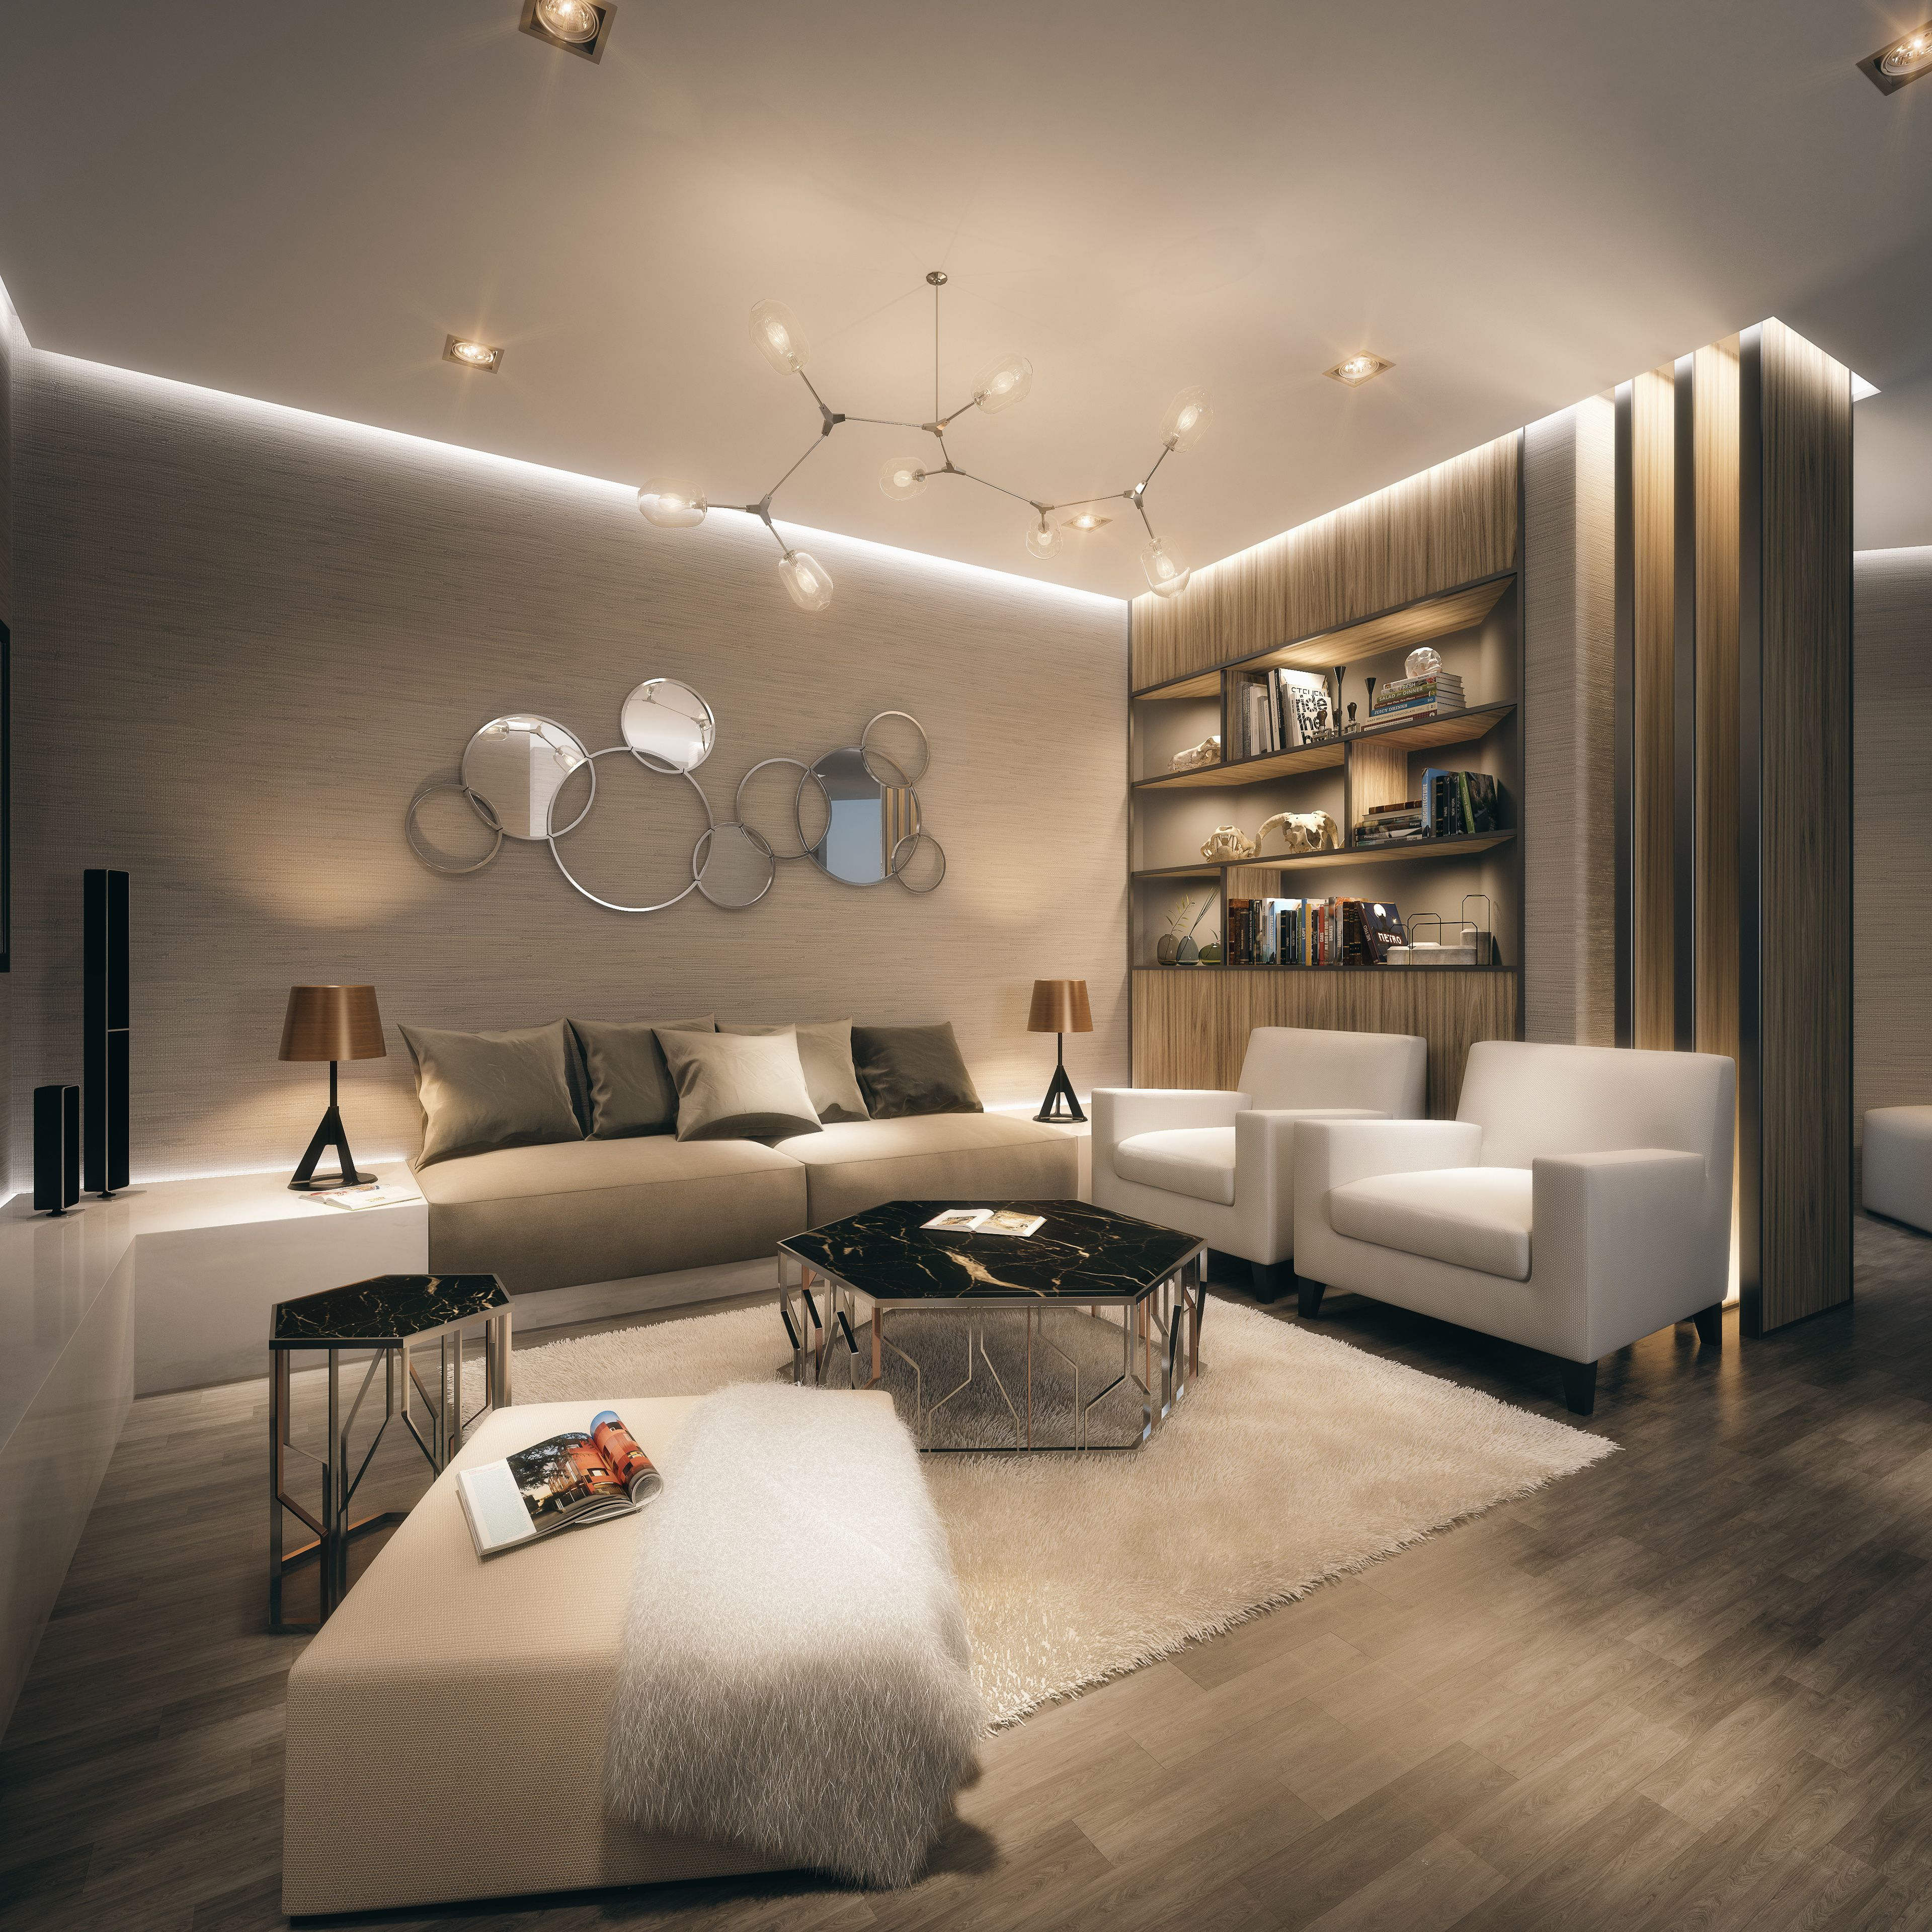 51 Modern Living Room Design From Talented Architects: Private Luxury Apartments Complex In Western Africa. Full